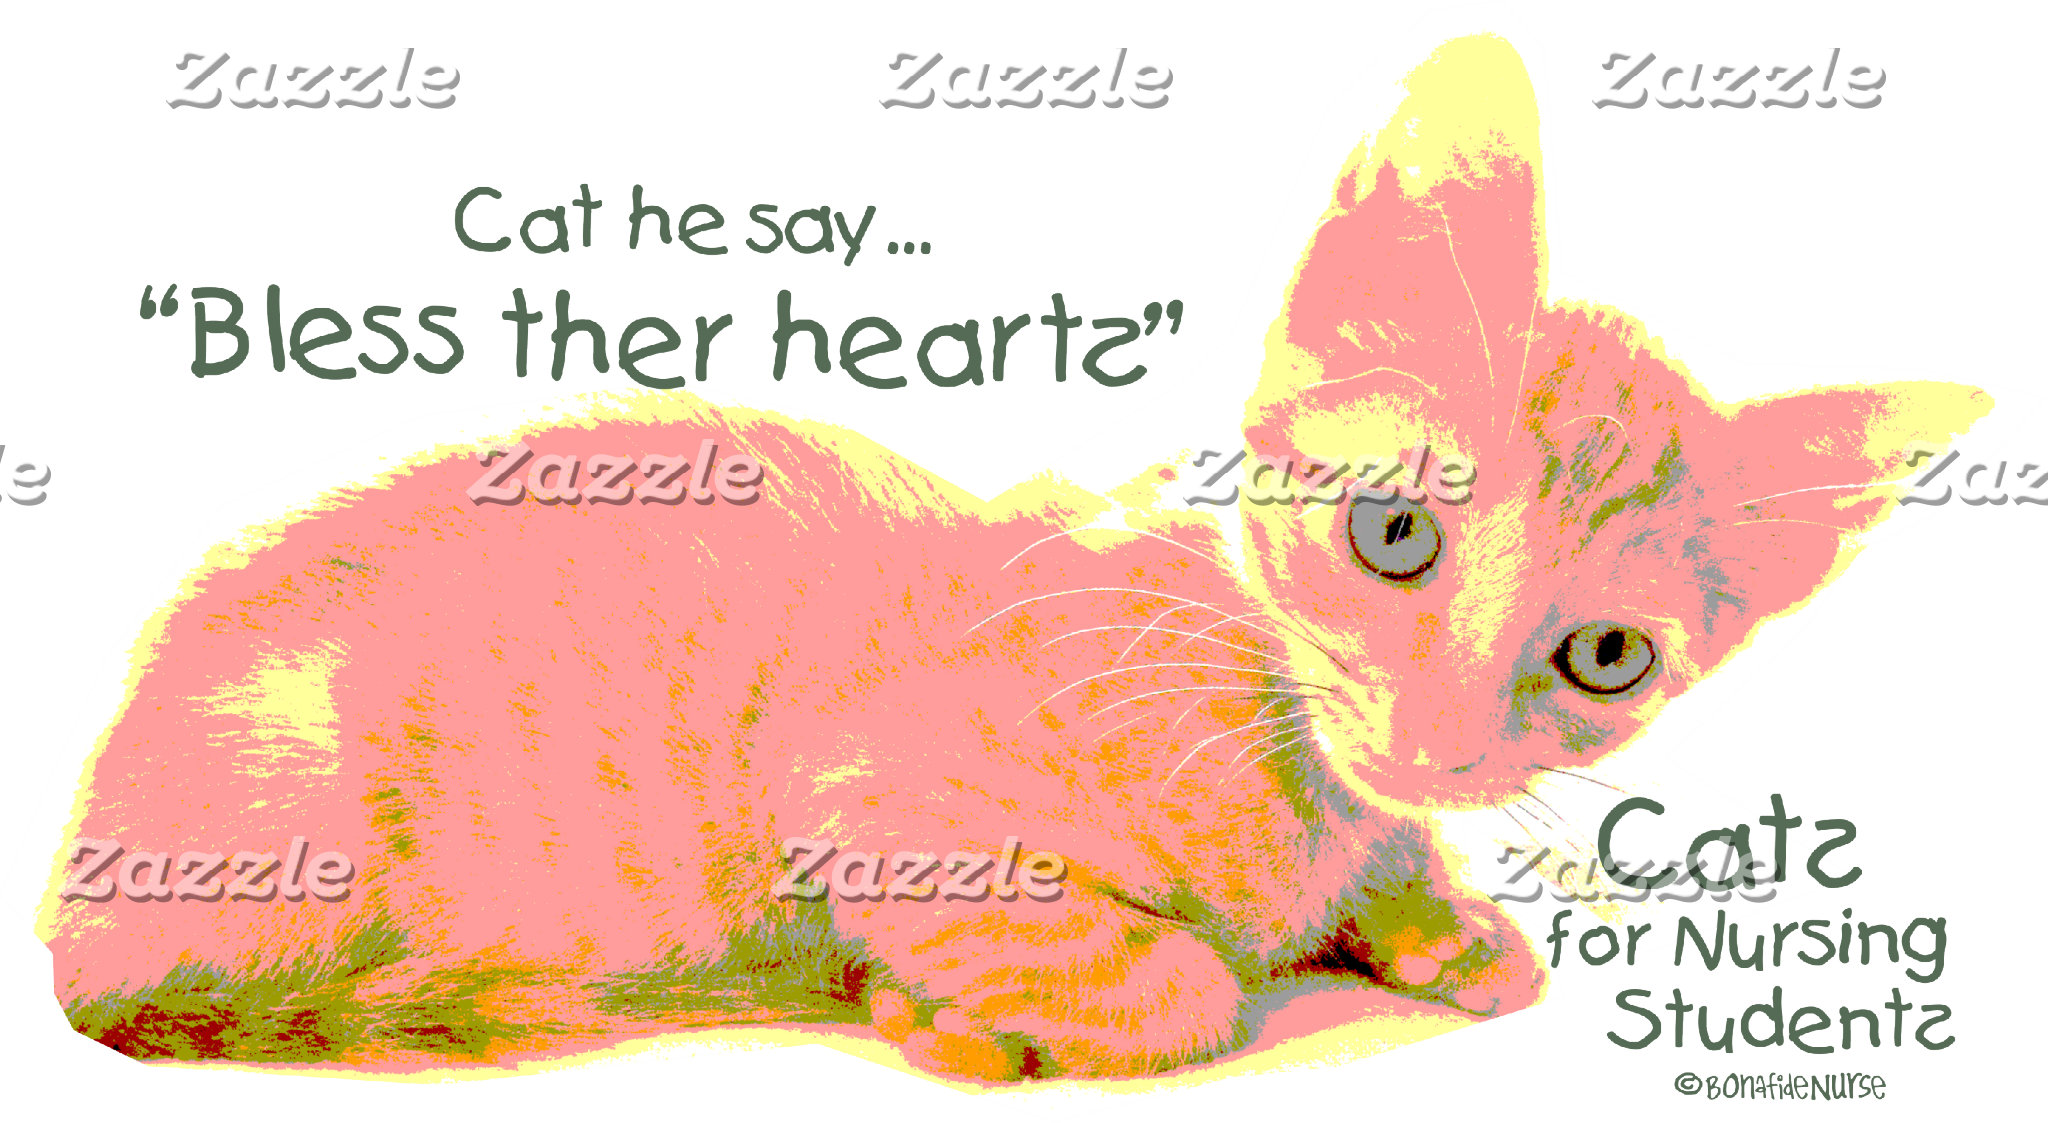 Cats for Nursing Students - Cat he Say